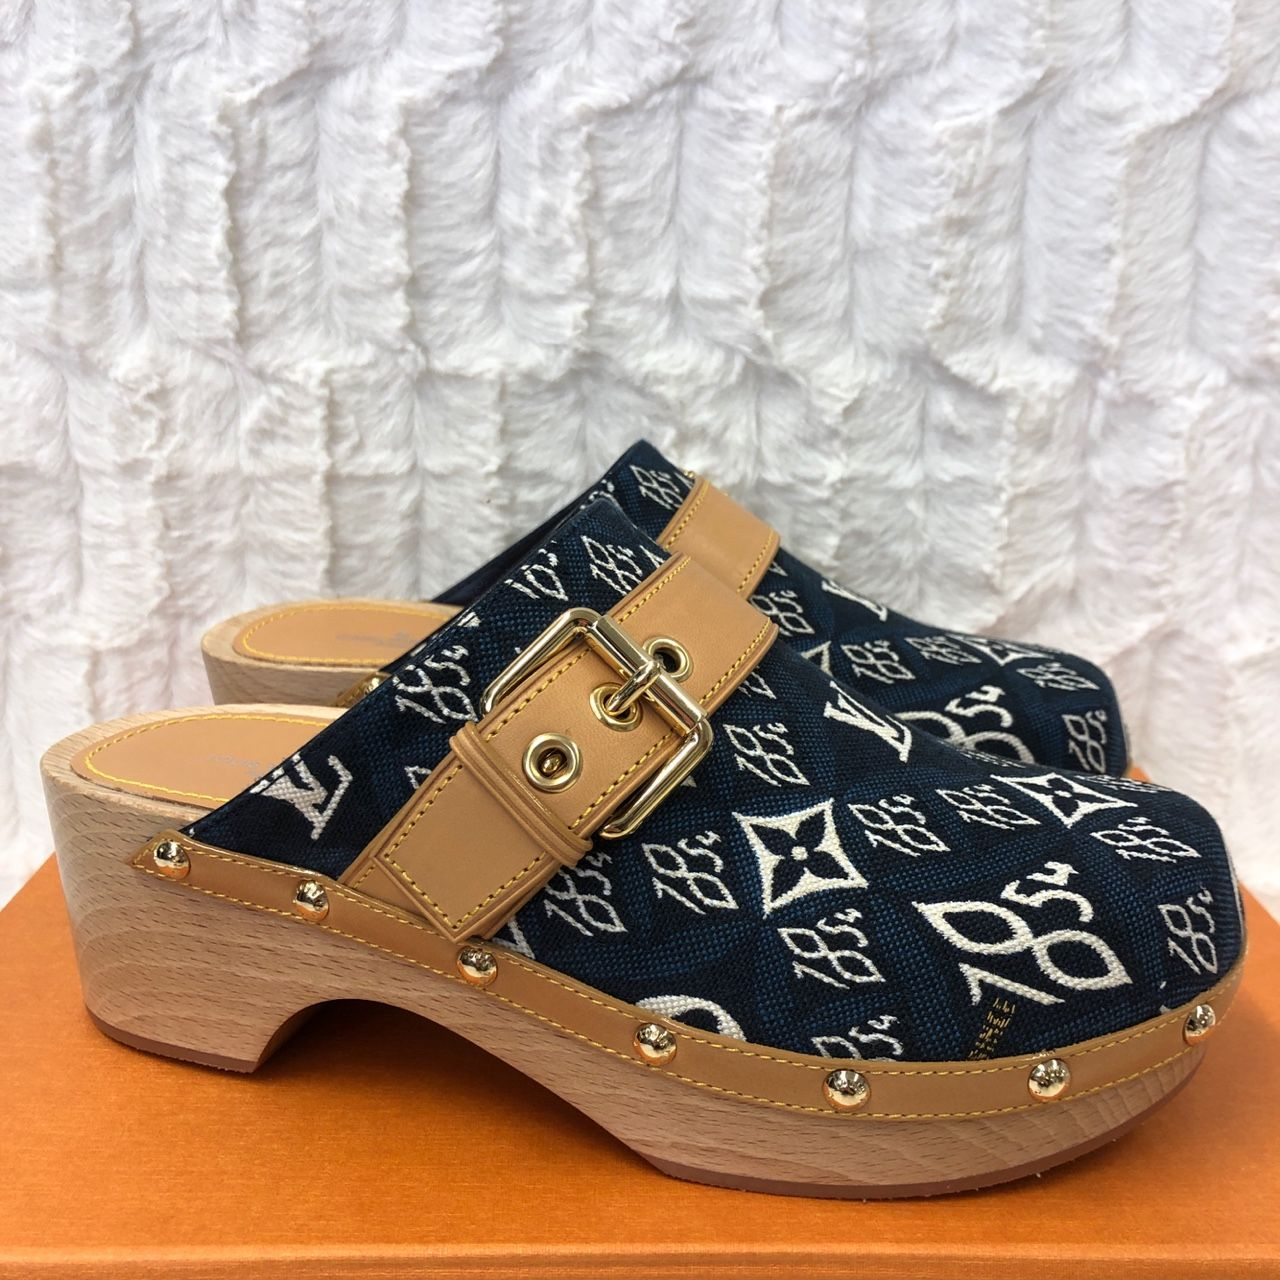 Louis Vuitton Since 1854 Cottage Clog MULES 1A8NUH